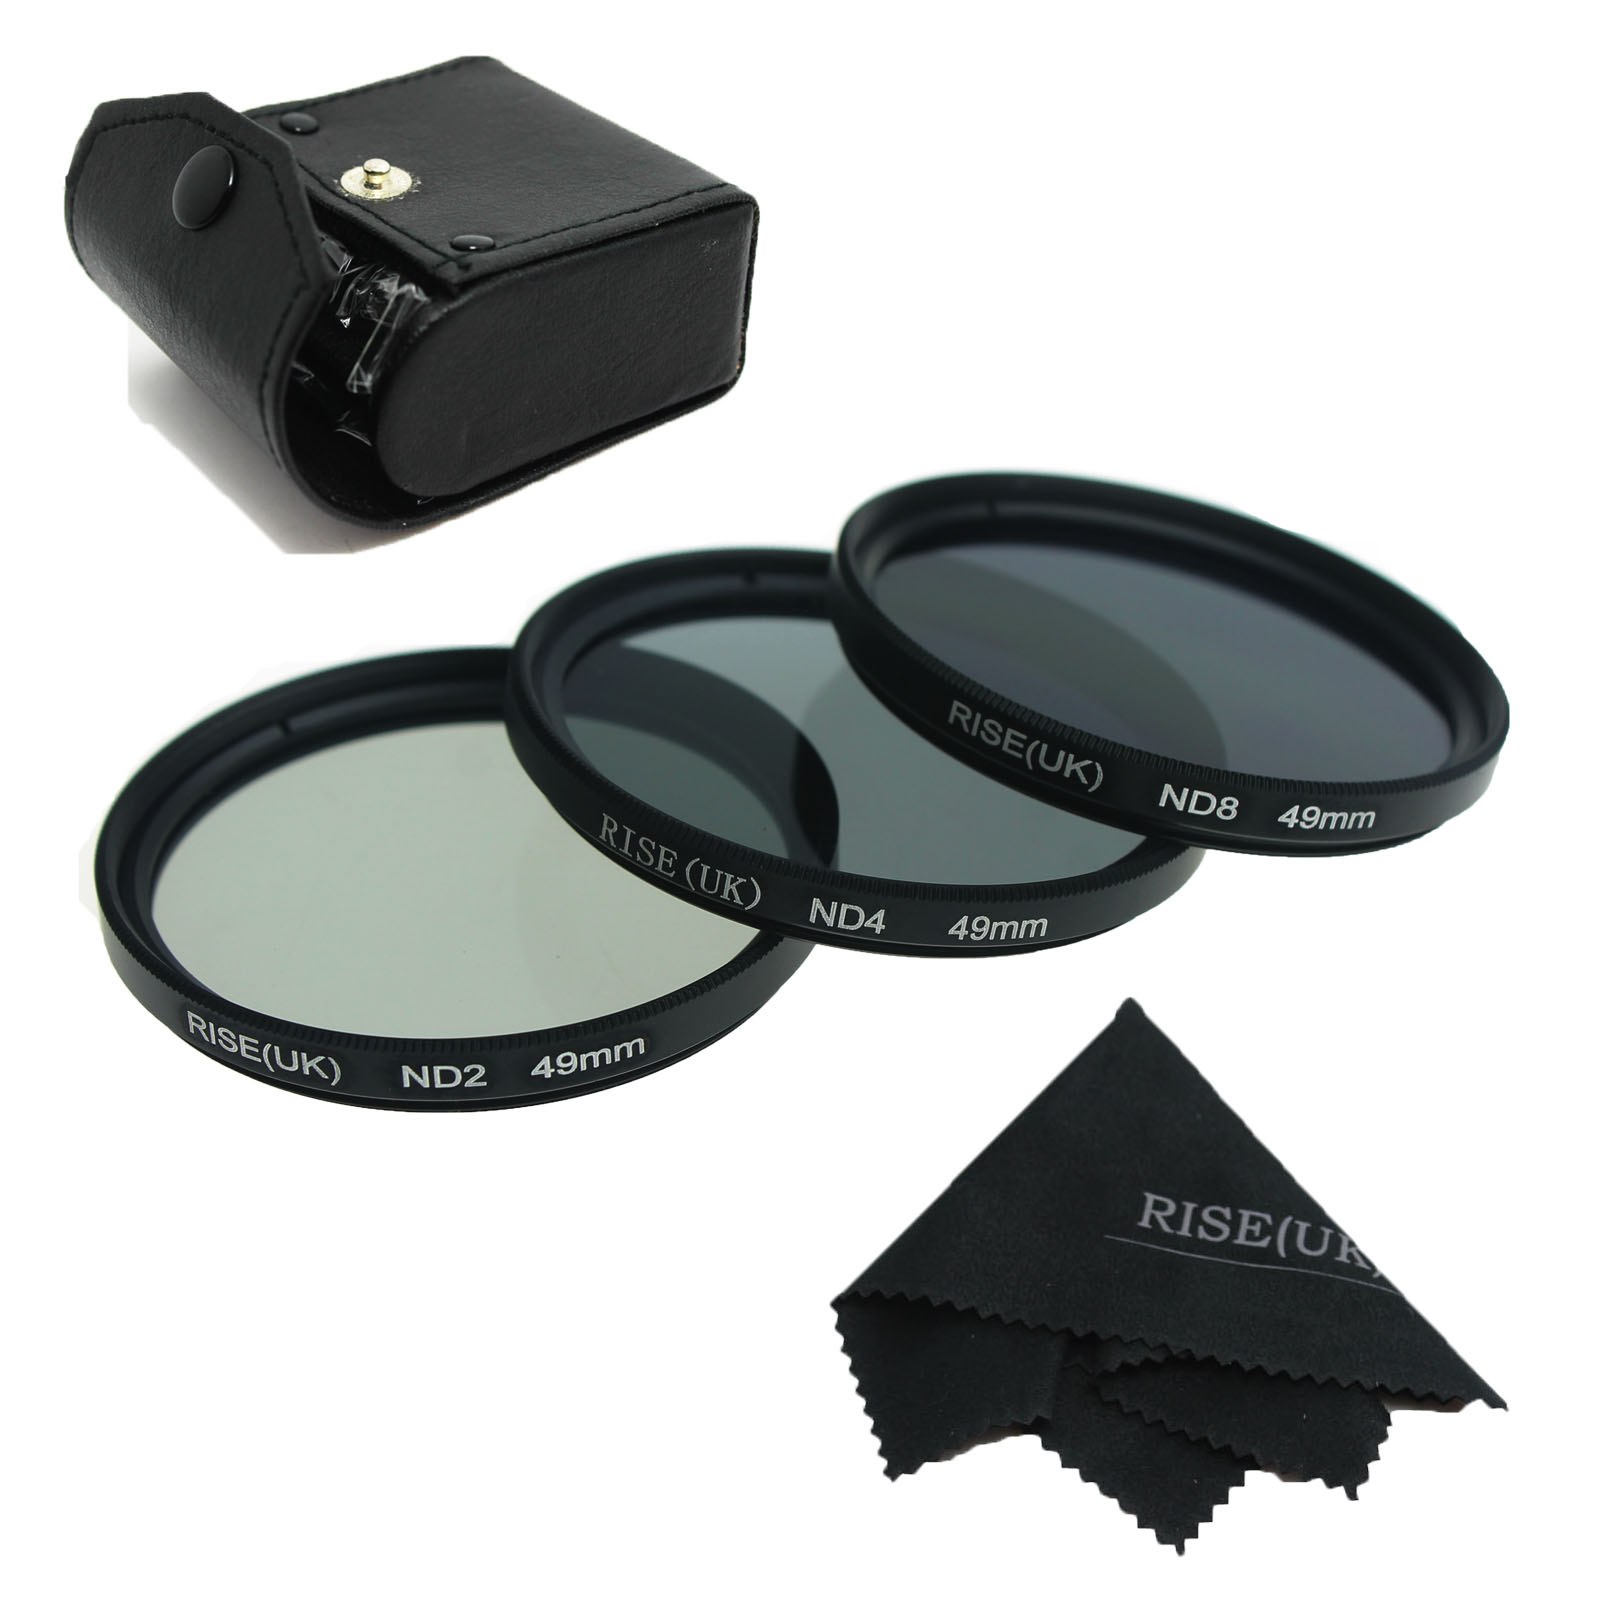 RISE (UK) 49mm 52mm 55mm 58mm 62mm 67mm 72mm 77MM Neutral Density Filter Lens Set Kit ND2 ND4 ND8 ND 2 4 8